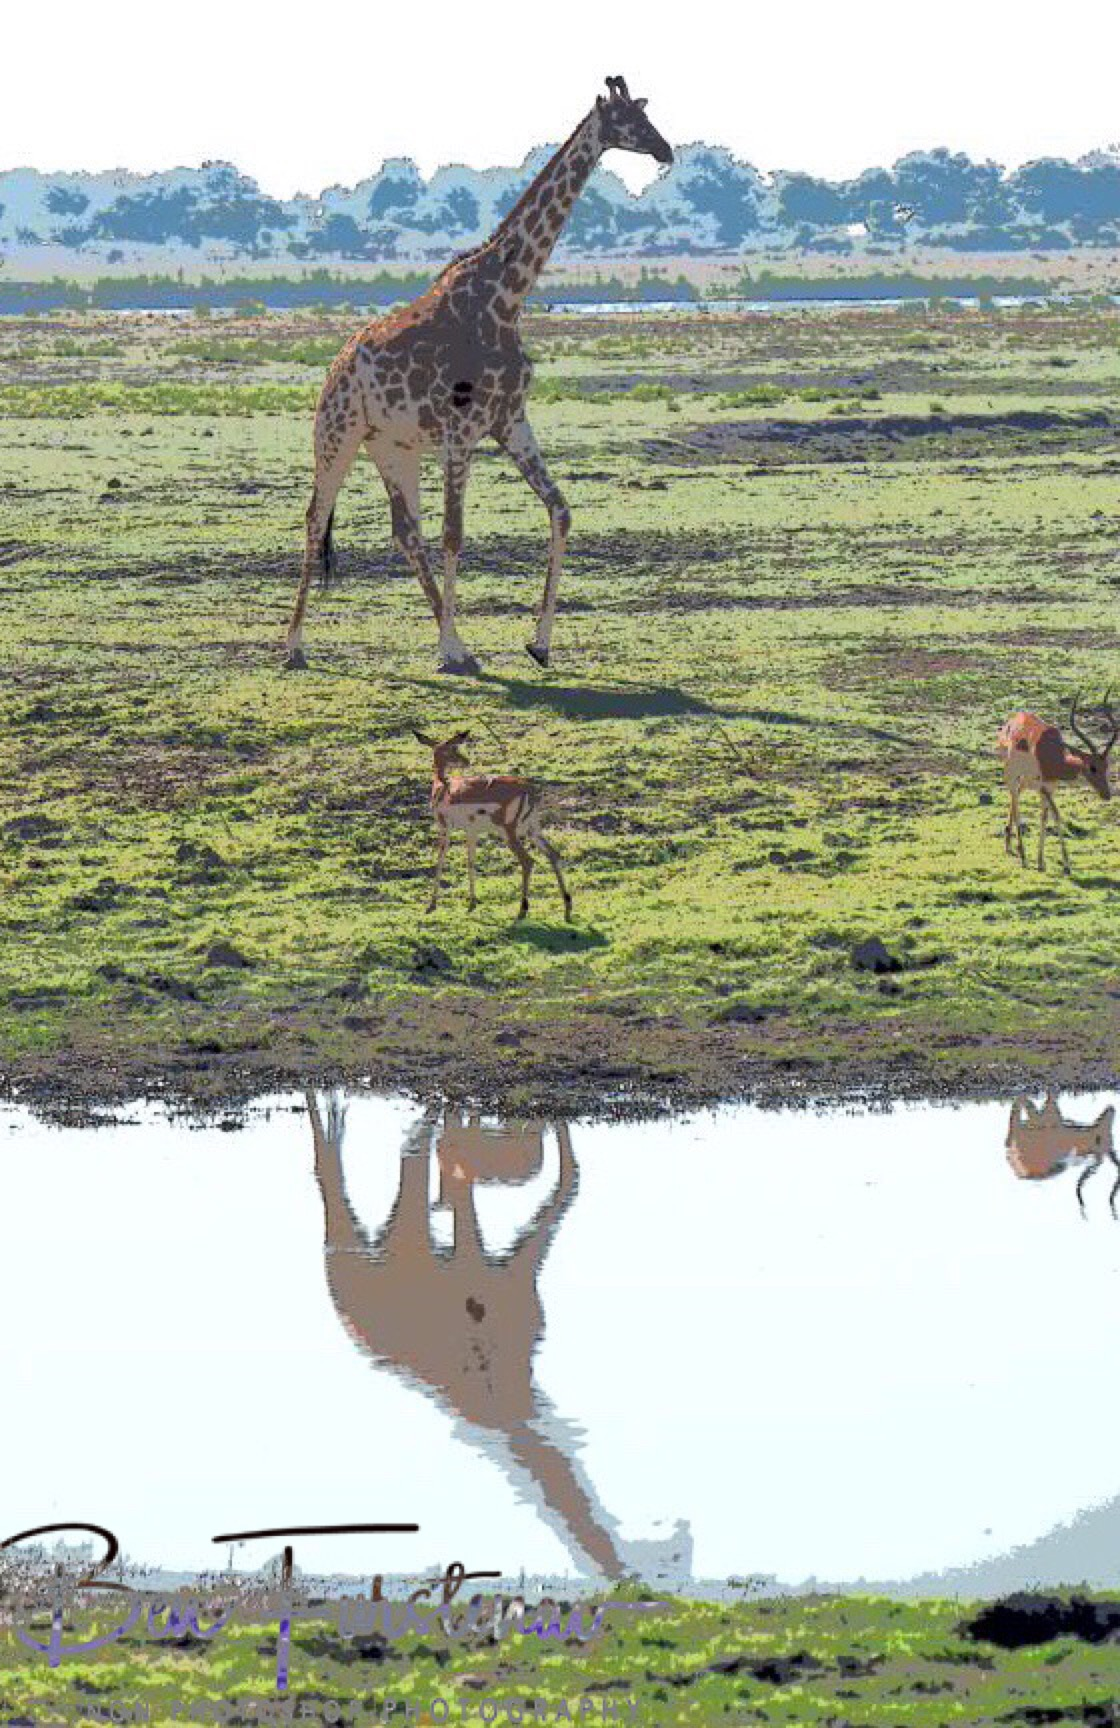 Giraffe and Impala reflections , Chobe National Park, Botswana